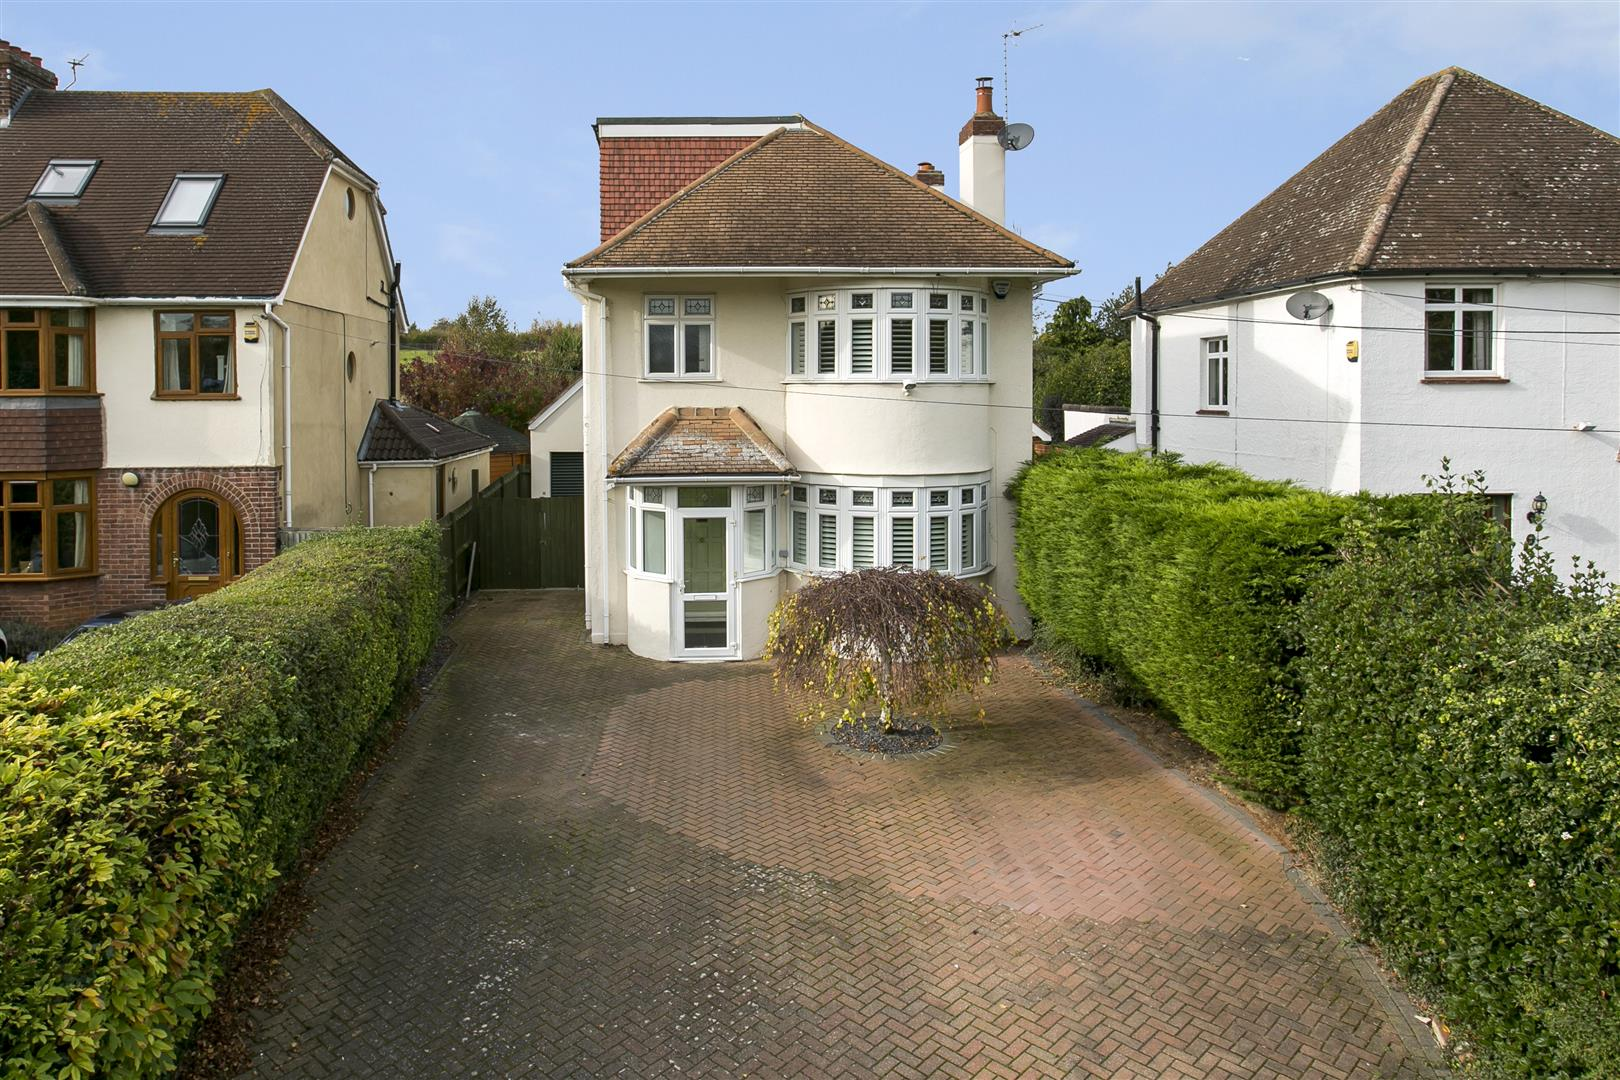 3 Bedrooms Detached House for sale in Castle Way, Leybourne, West Malling